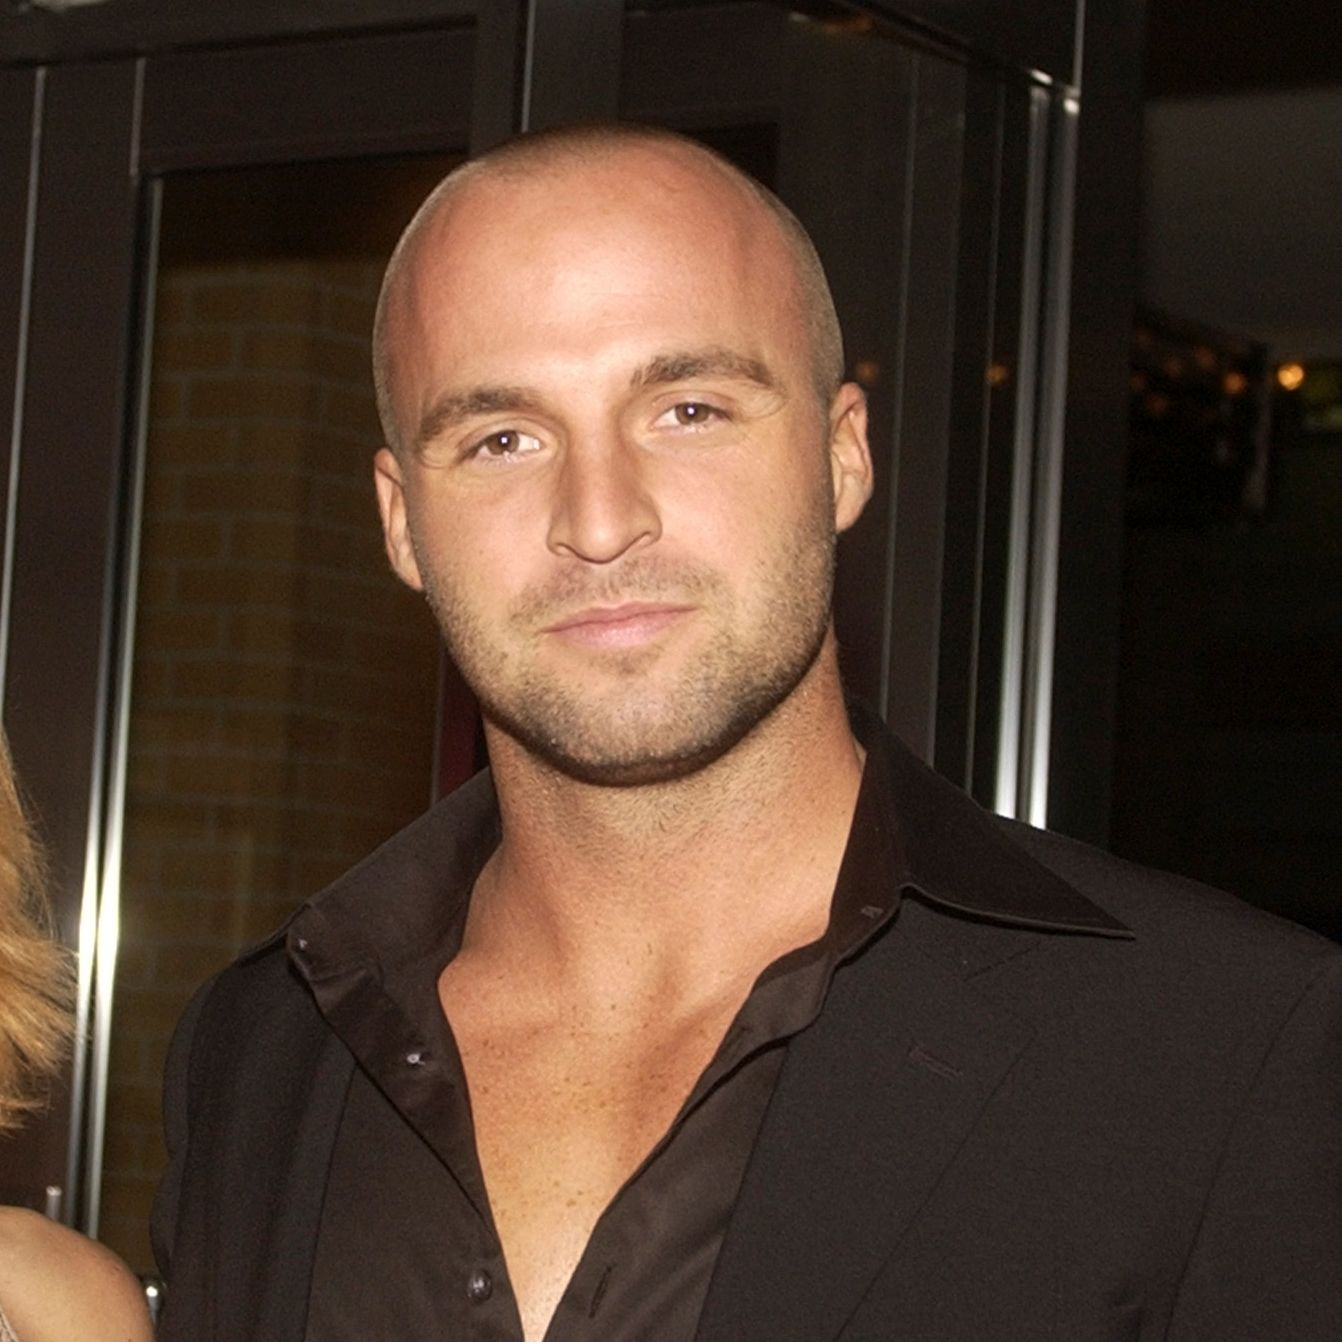 Home and Away star Ben Unwin dies aged 41